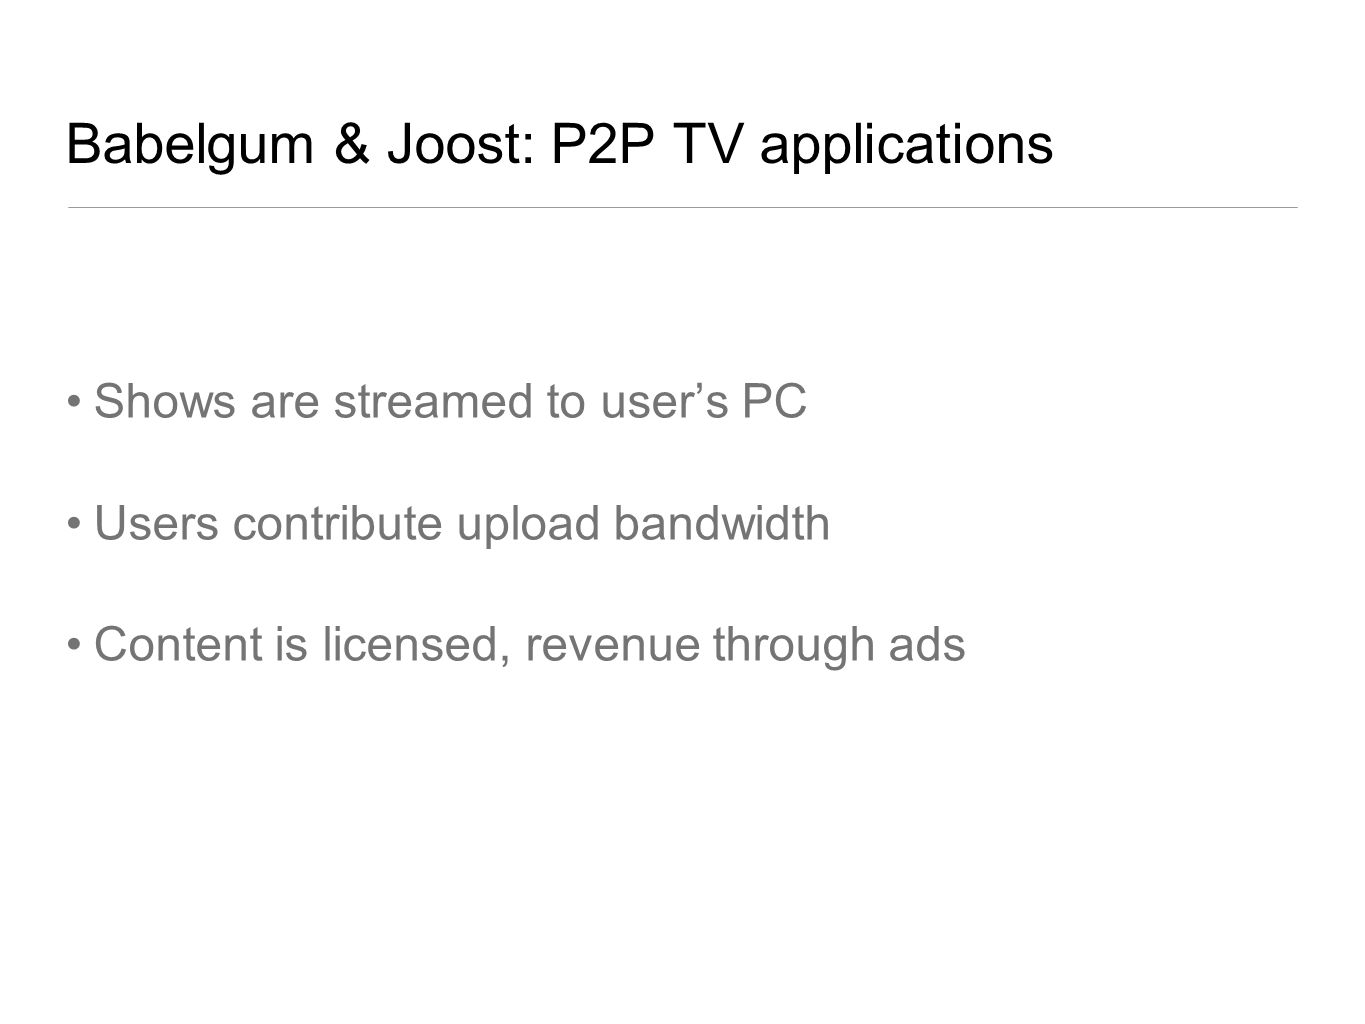 Babelgum & Joost: P2P TV applications Shows are streamed to users PC Users contribute upload bandwidth Content is licensed, revenue through ads